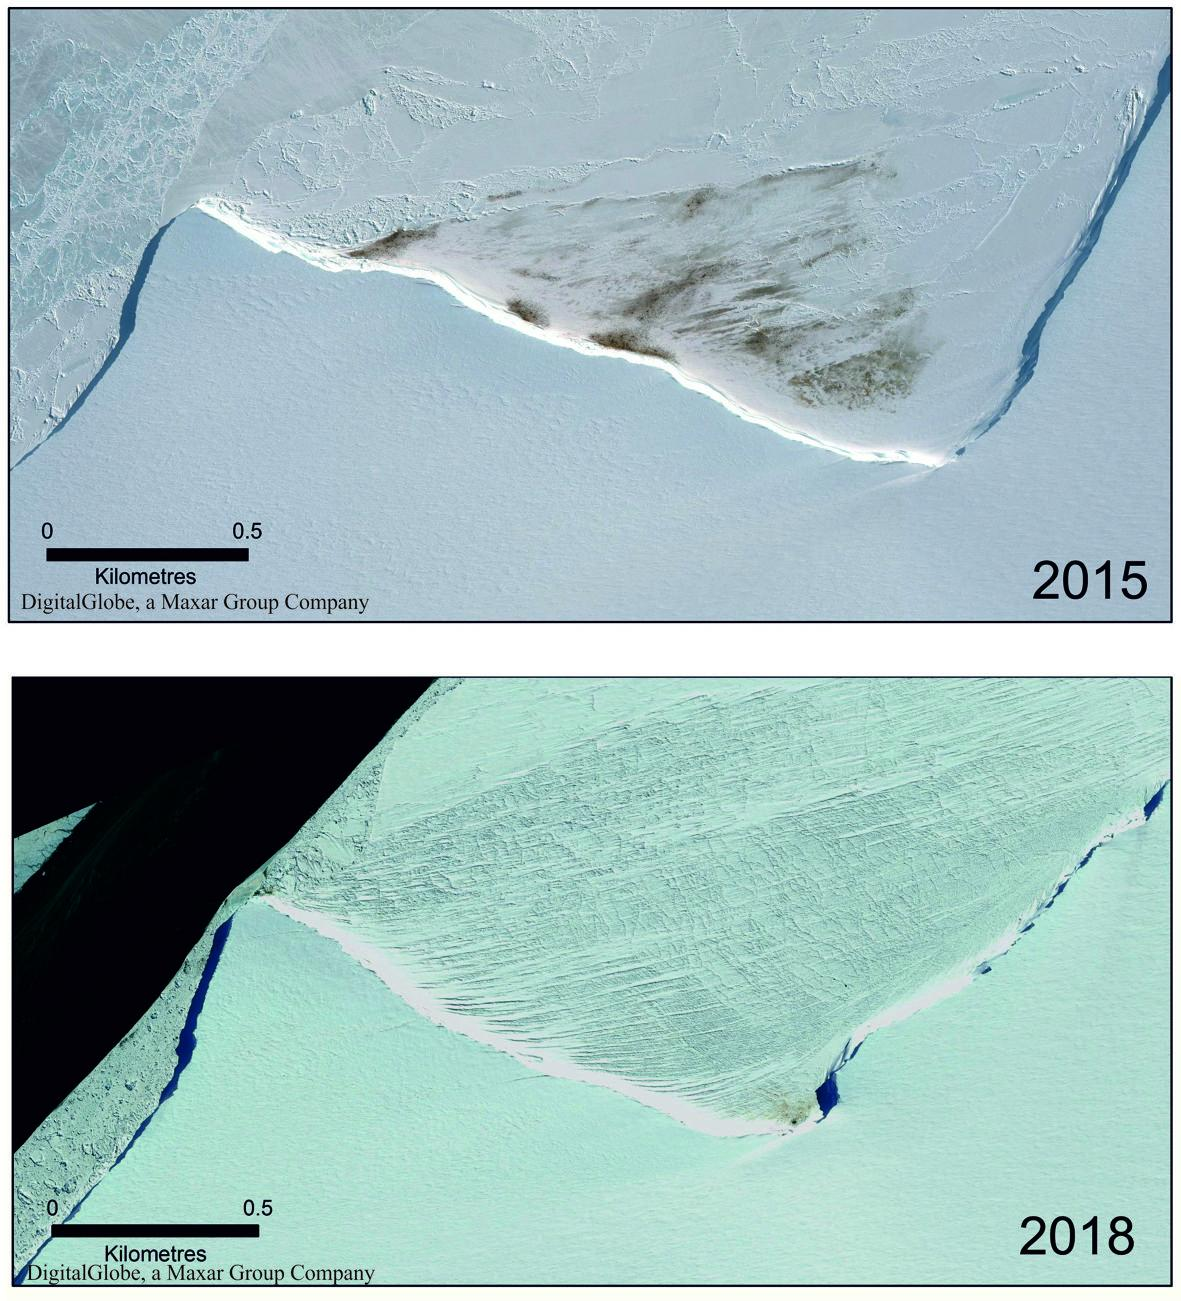 EM2 SMALL Satellite imagery comparison of Halley Bay colony in 2015 and 2018